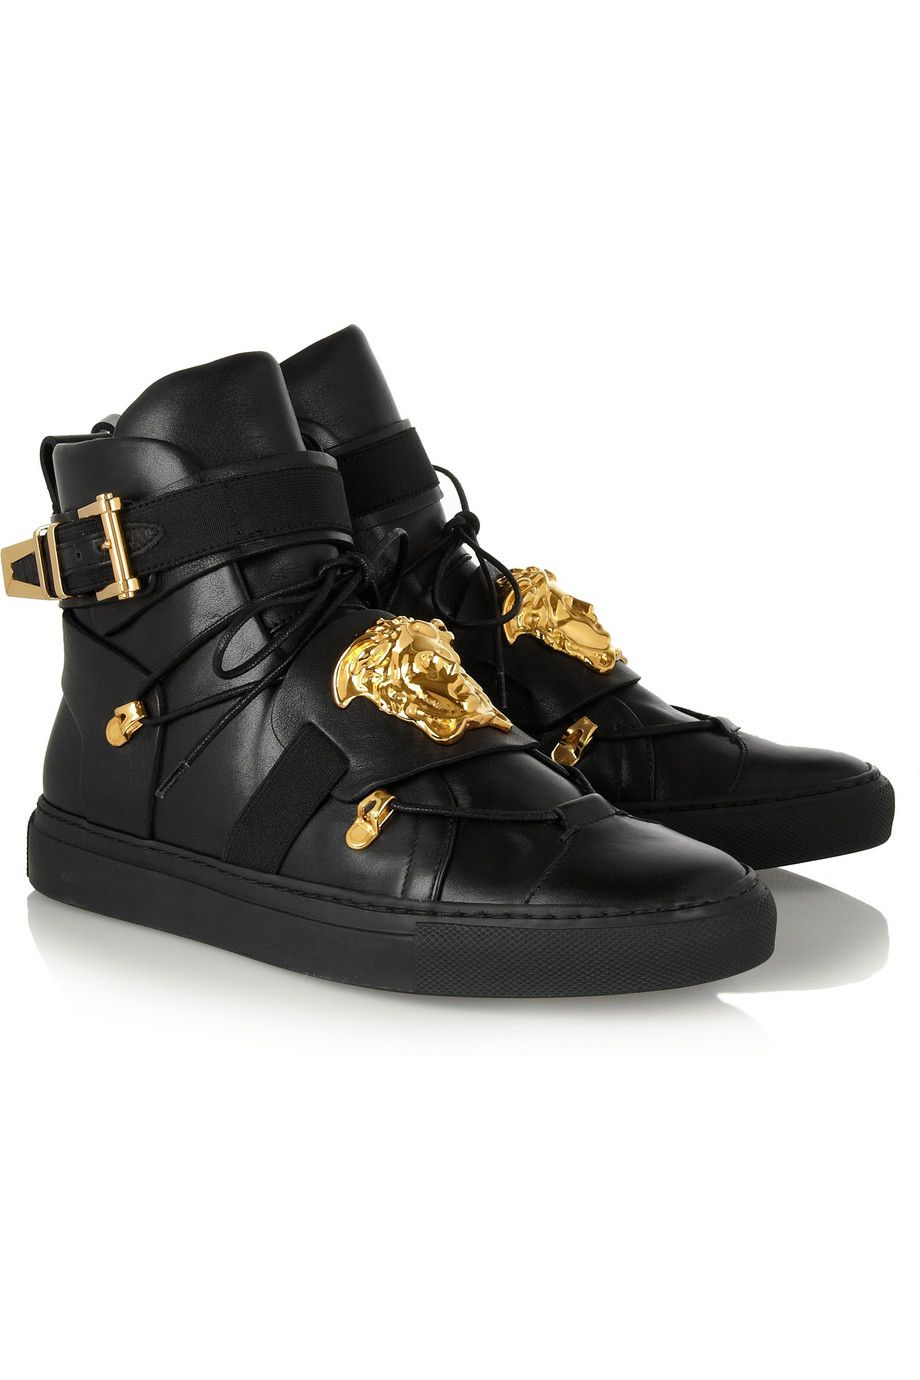 Le Meilleur Versace Embellished Leather High Top Sneakers Net A Ce Mois Ci